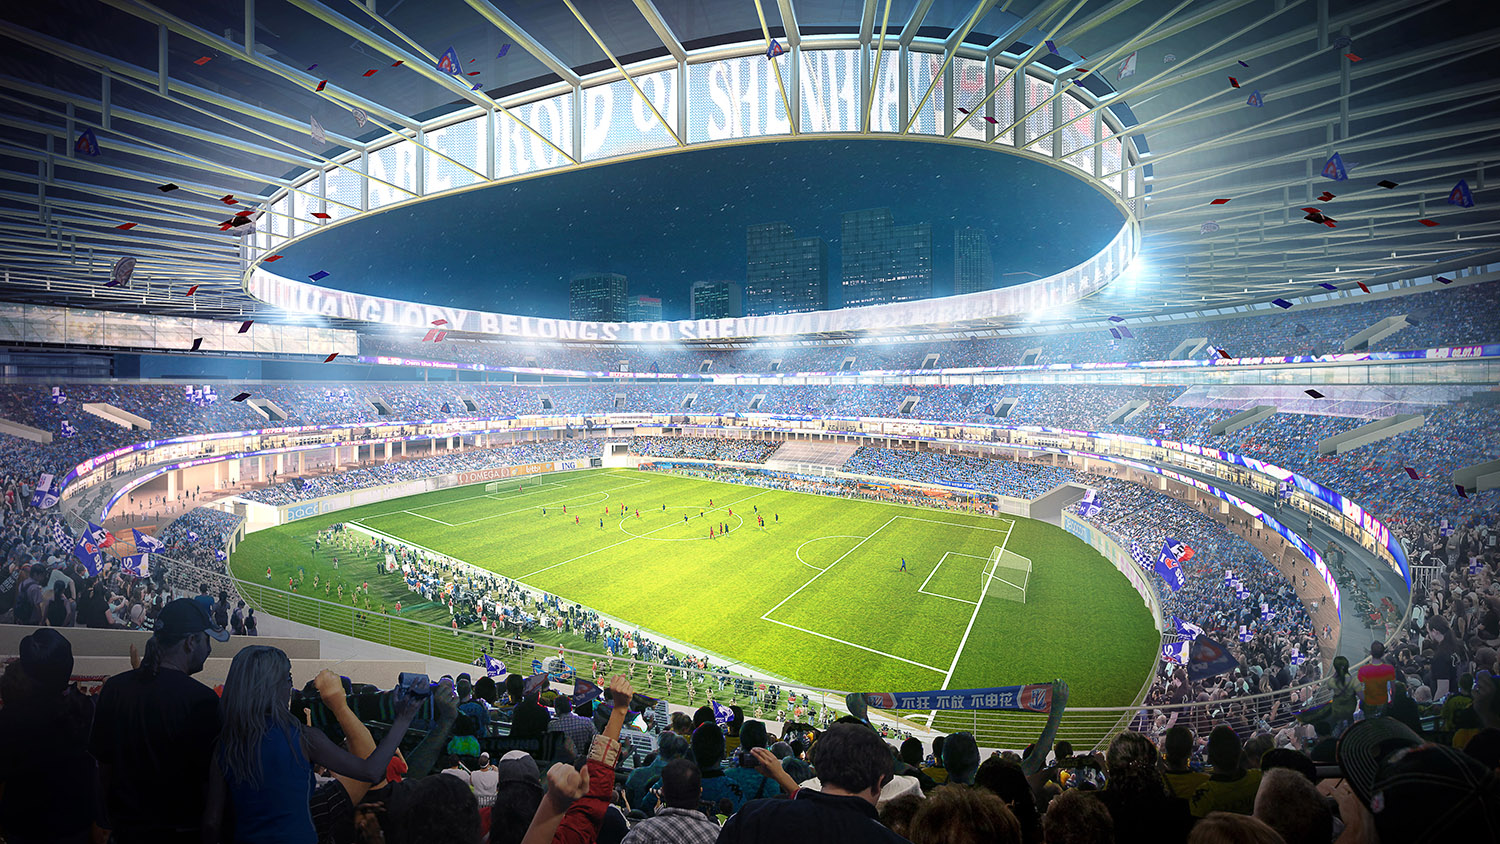 The stadium's capacity was also expanded by 15,000 seats, accommodating 50,000 spectators in an optimized seating arrangement. SASAKI